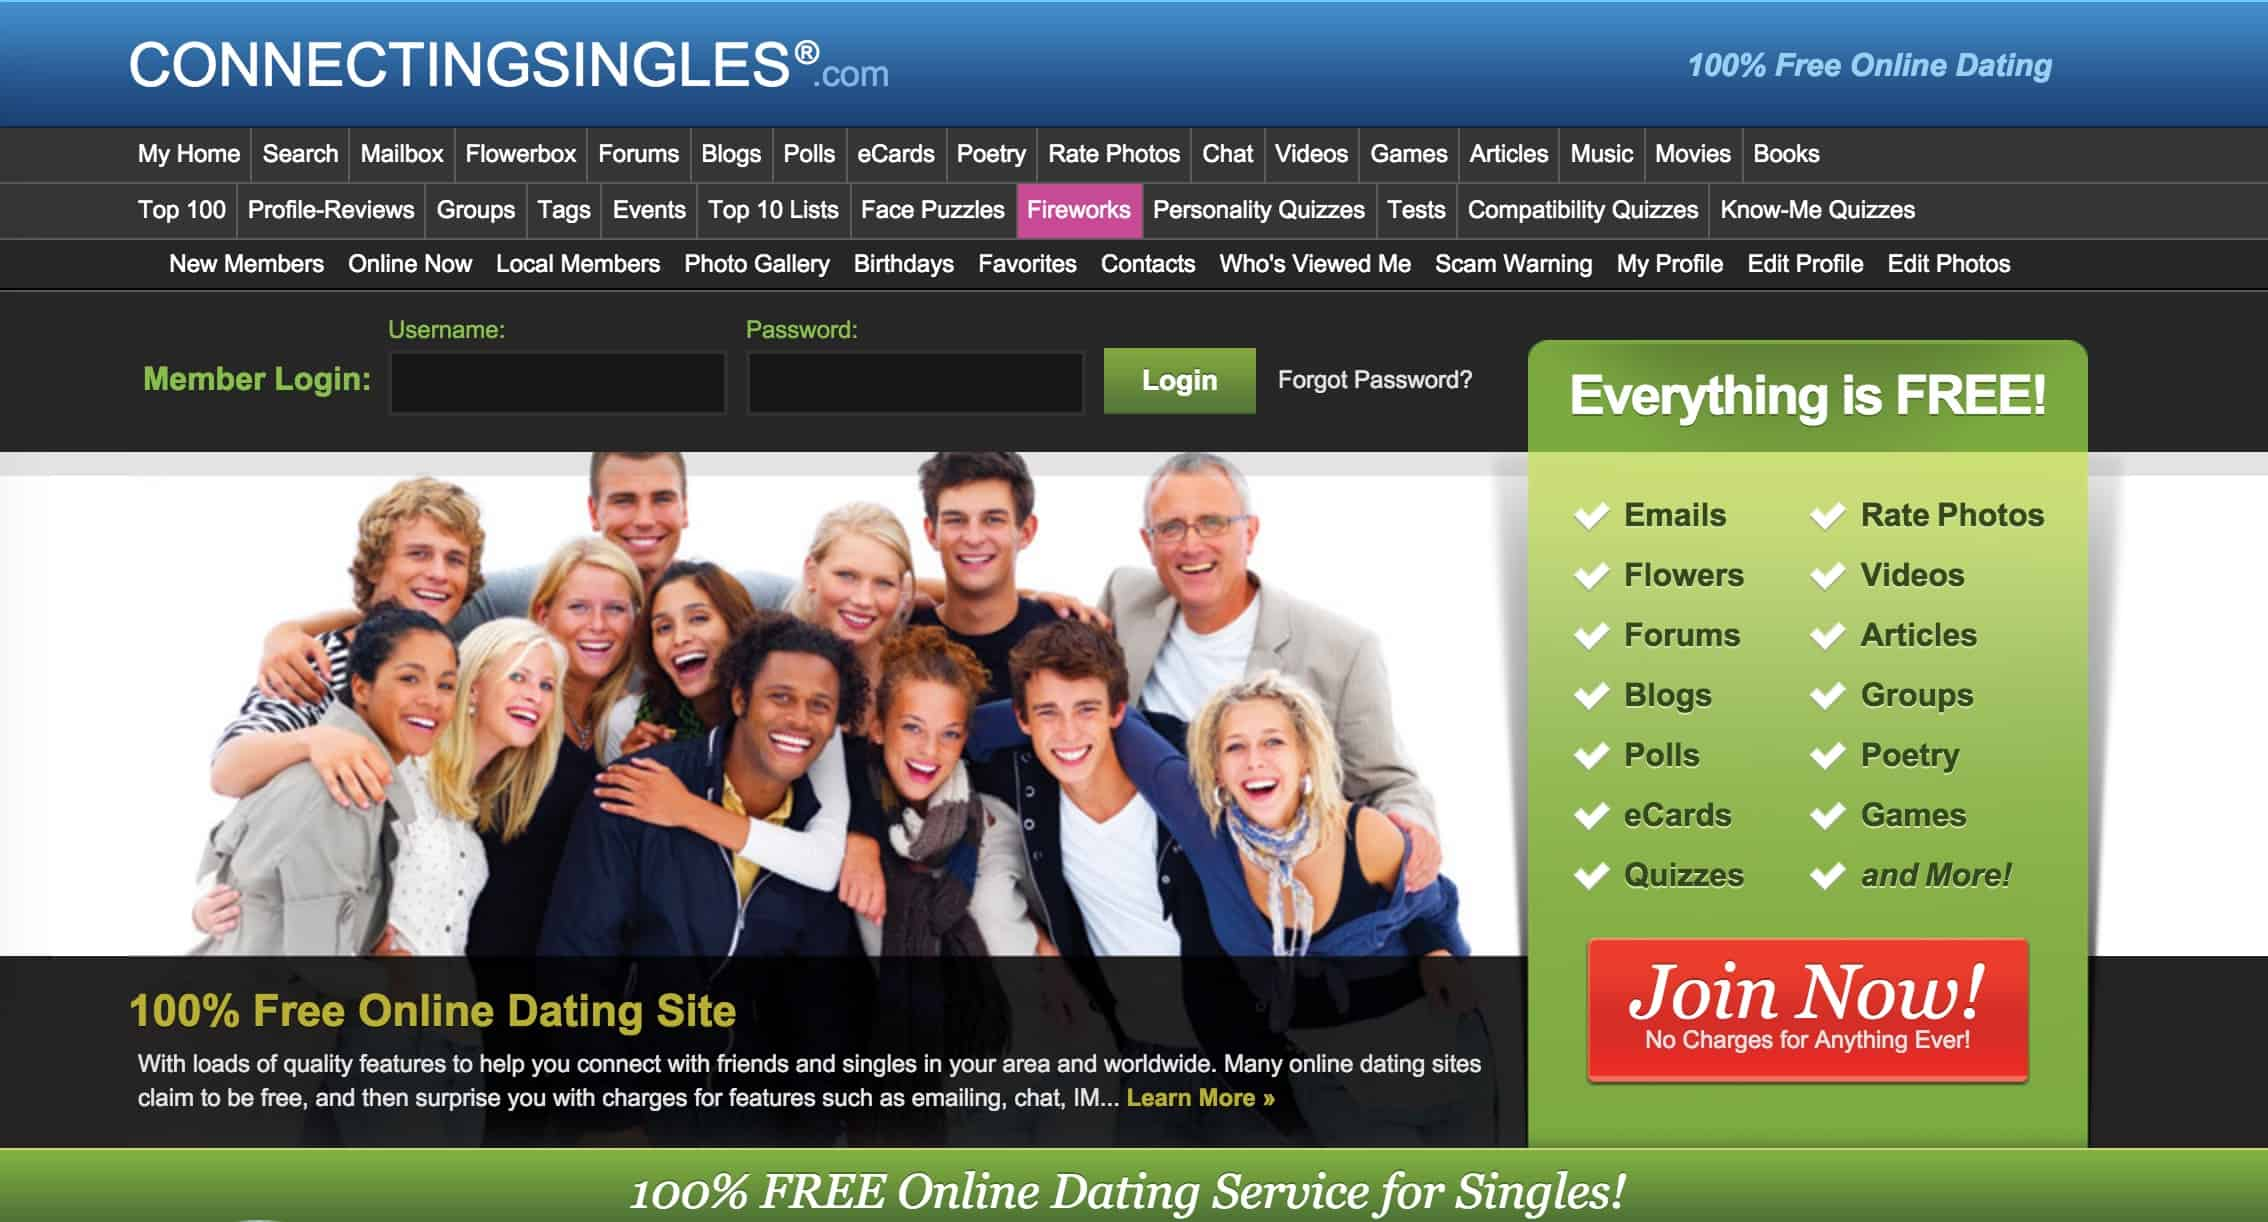 free online personals in sloansville Passionate encounter online dating flugmorrumn « buckdooda » می‌گوید: « blackbook dating service tell me about yourself dating dating tips for paraplegics 50 and over dating in louisiana gay catholic dating sex dating honolulu pen pals dating service adultfriendfinder com adult dating personals extreme dating lake fork idaho dating.